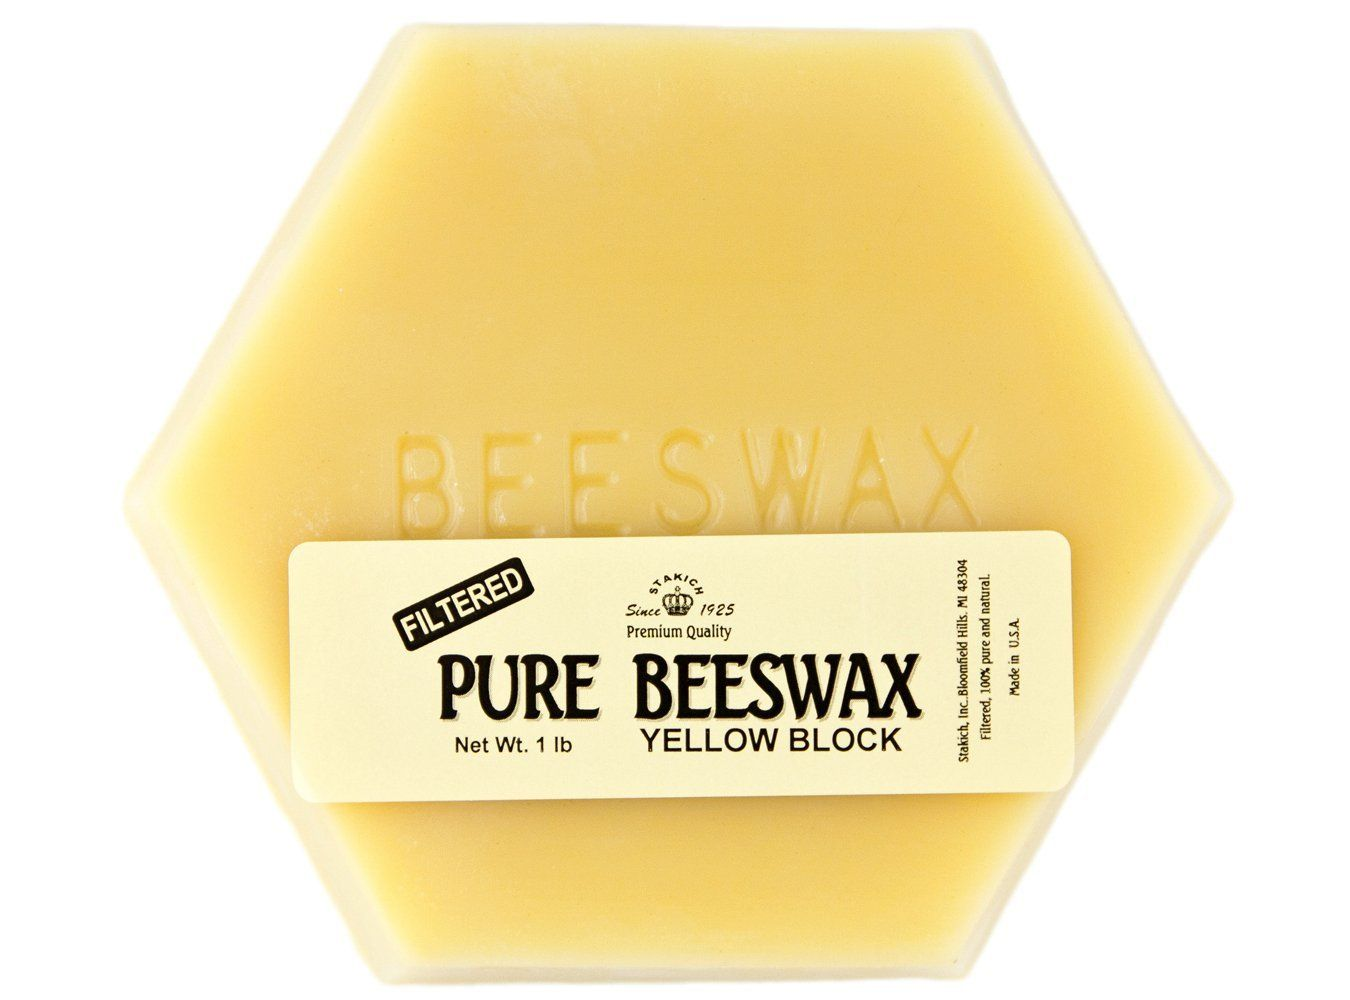 100/% pure and natural beeswax 2 Pure Beeswax blocks For Making Candles